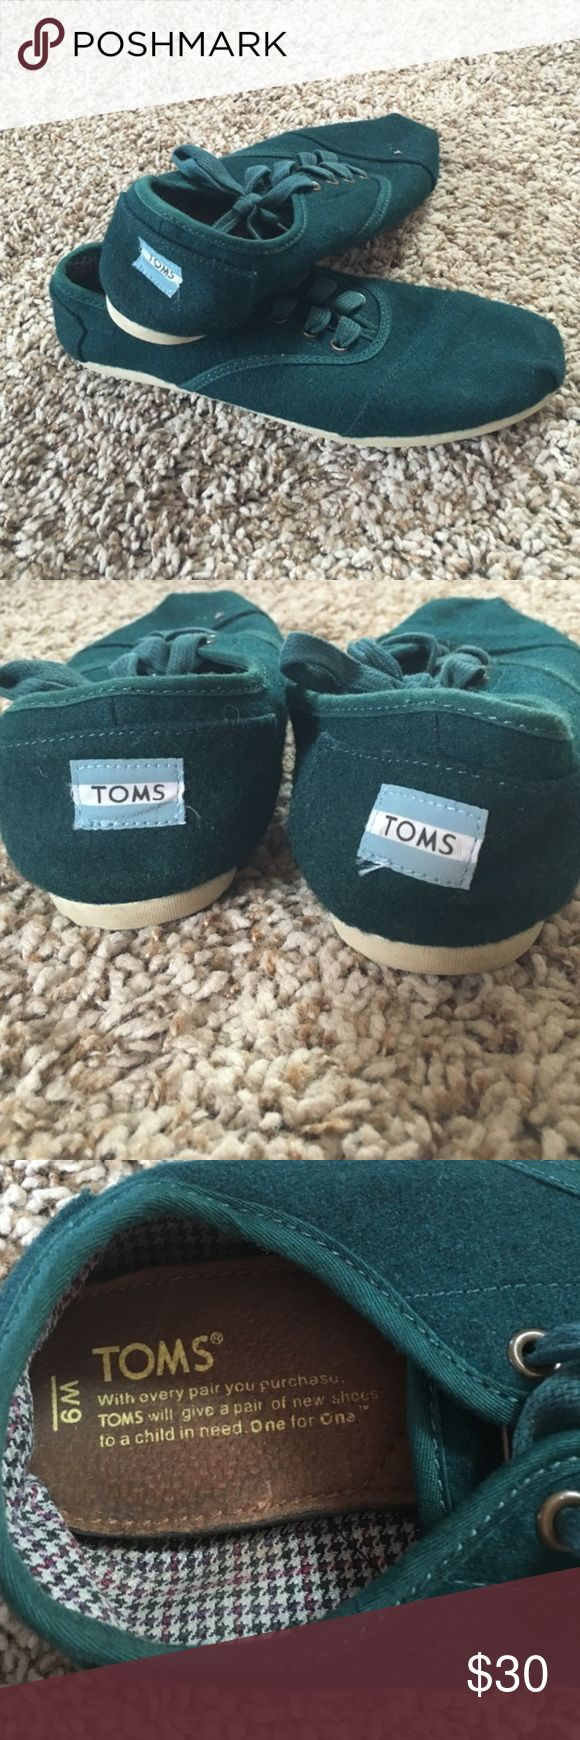 Women's Green Laced Toms Shoes Sneaker These are barely worn green sneaker TOMs! They are slightly small on me so I barely wore them! Super comfortable! TOMS Shoes Sneakers